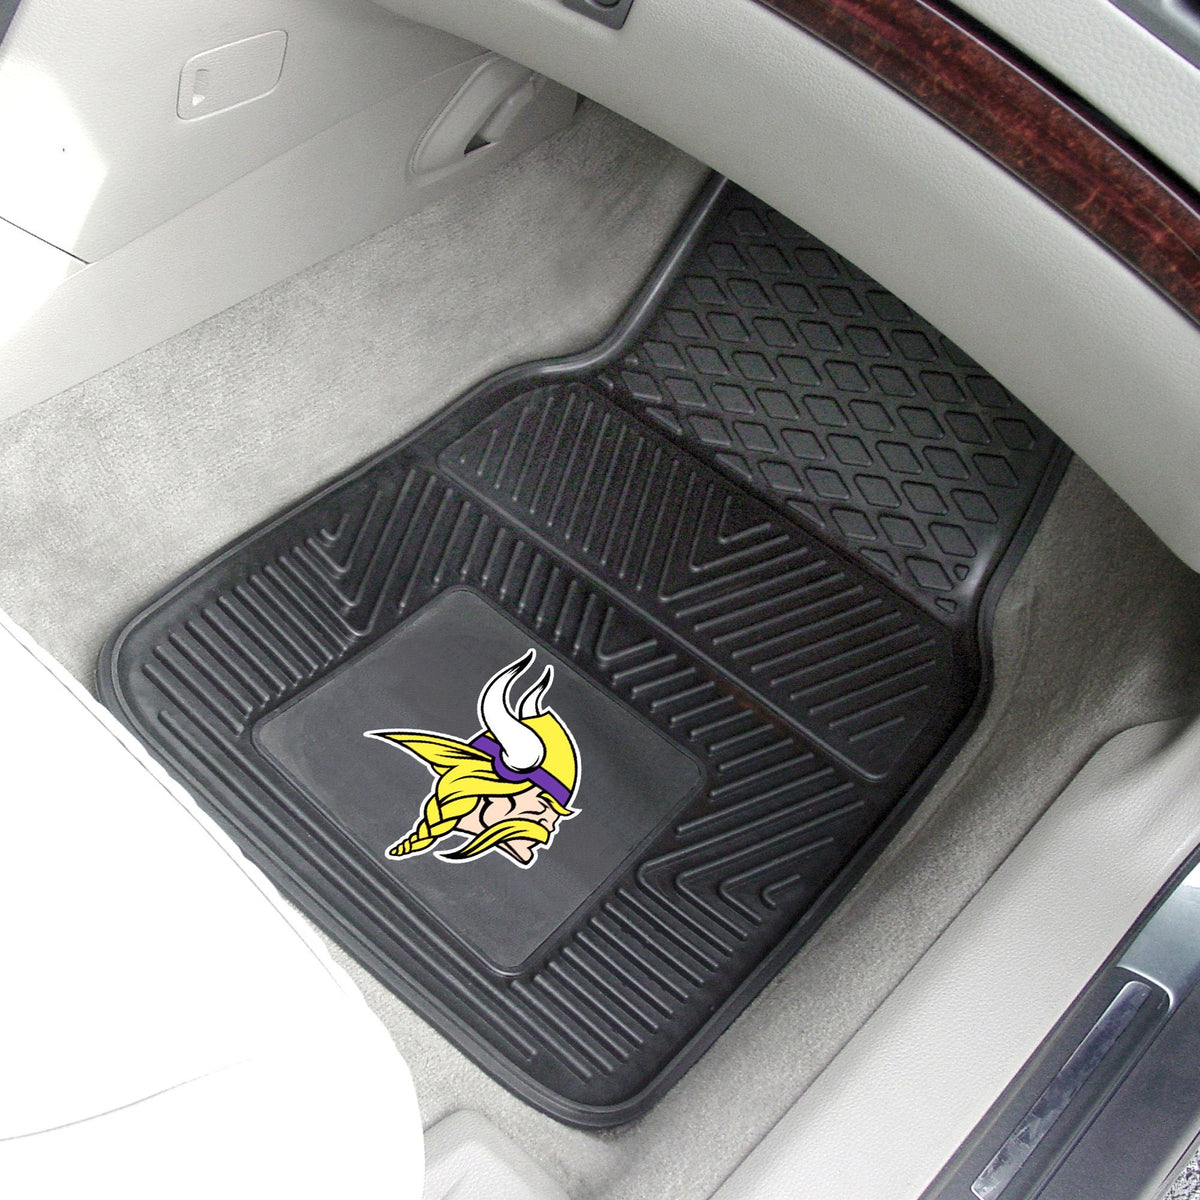 NFL - 2-pc Vinyl Car Mat Set NFL Mats, Front Car Mats, 2-pc Vinyl Car Mat Set, NFL, Auto Fan Mats Minnesota Vikings